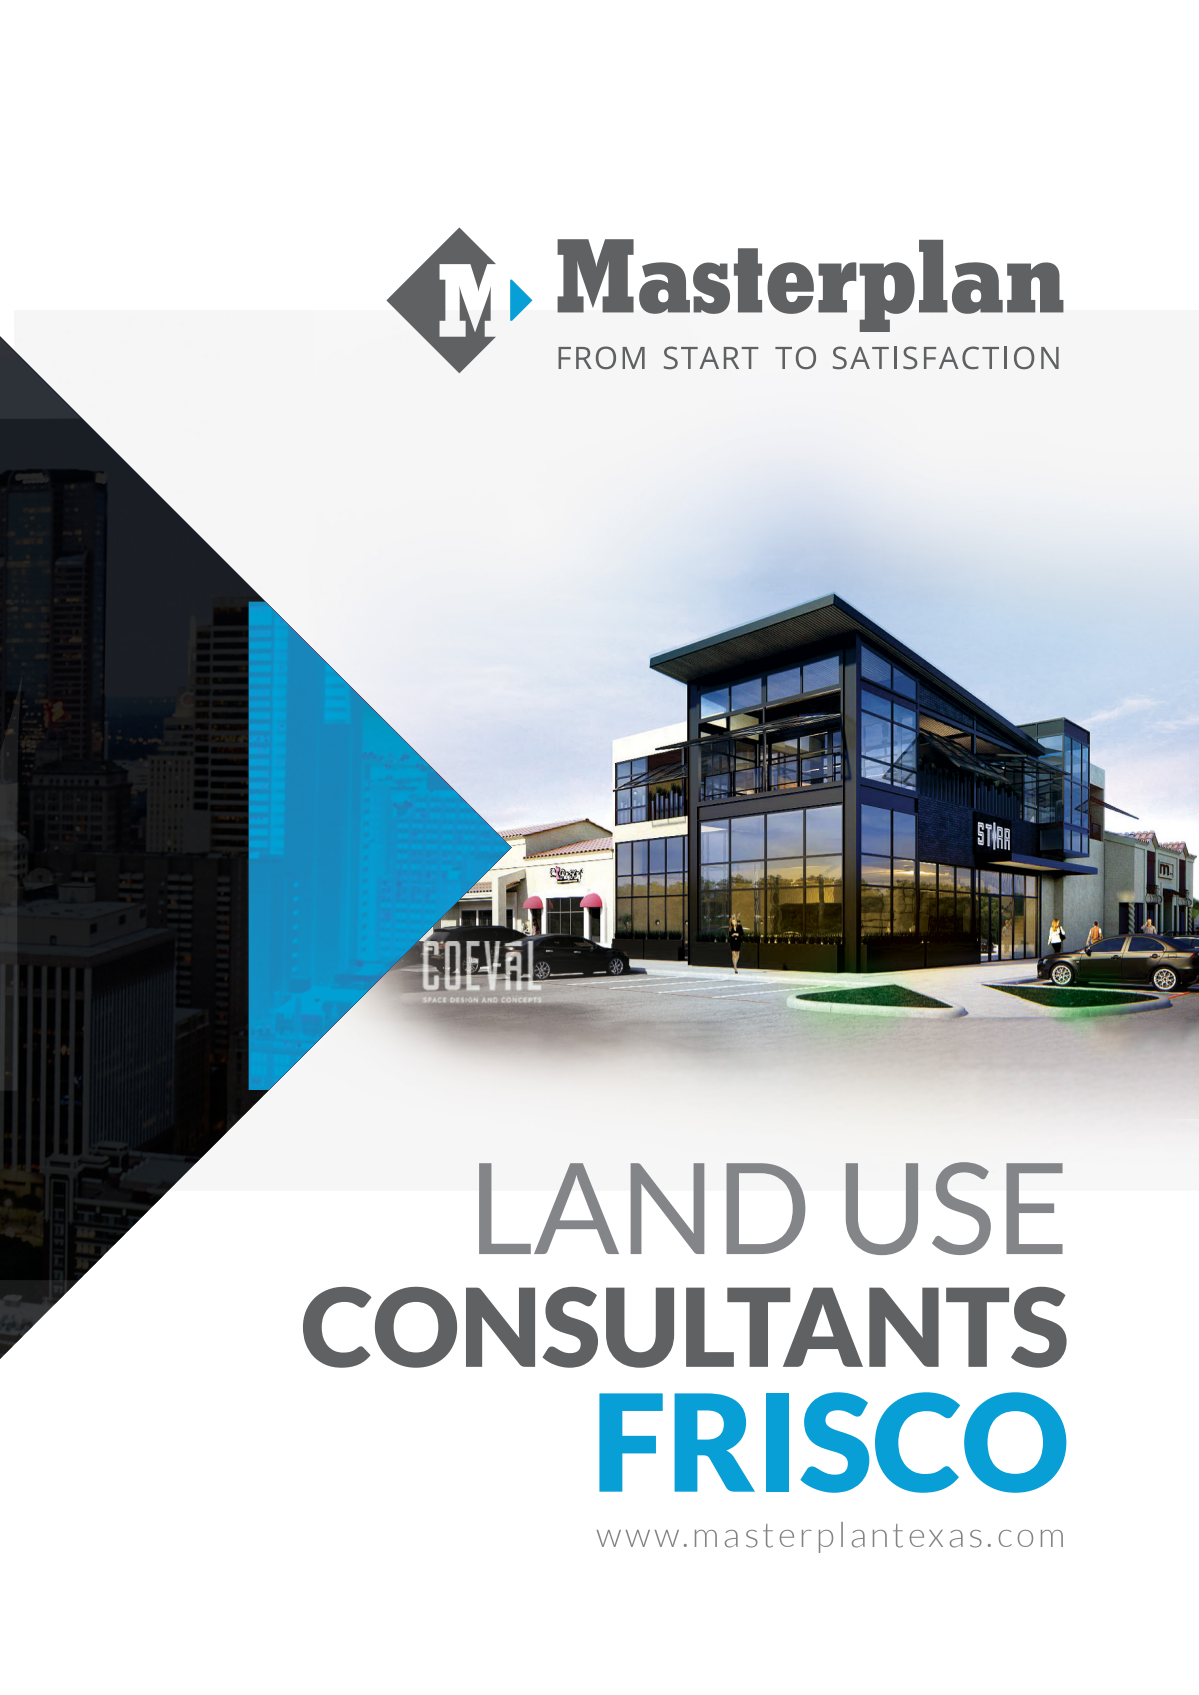 Marketing brochure for a new office branch in Frisco, TX.